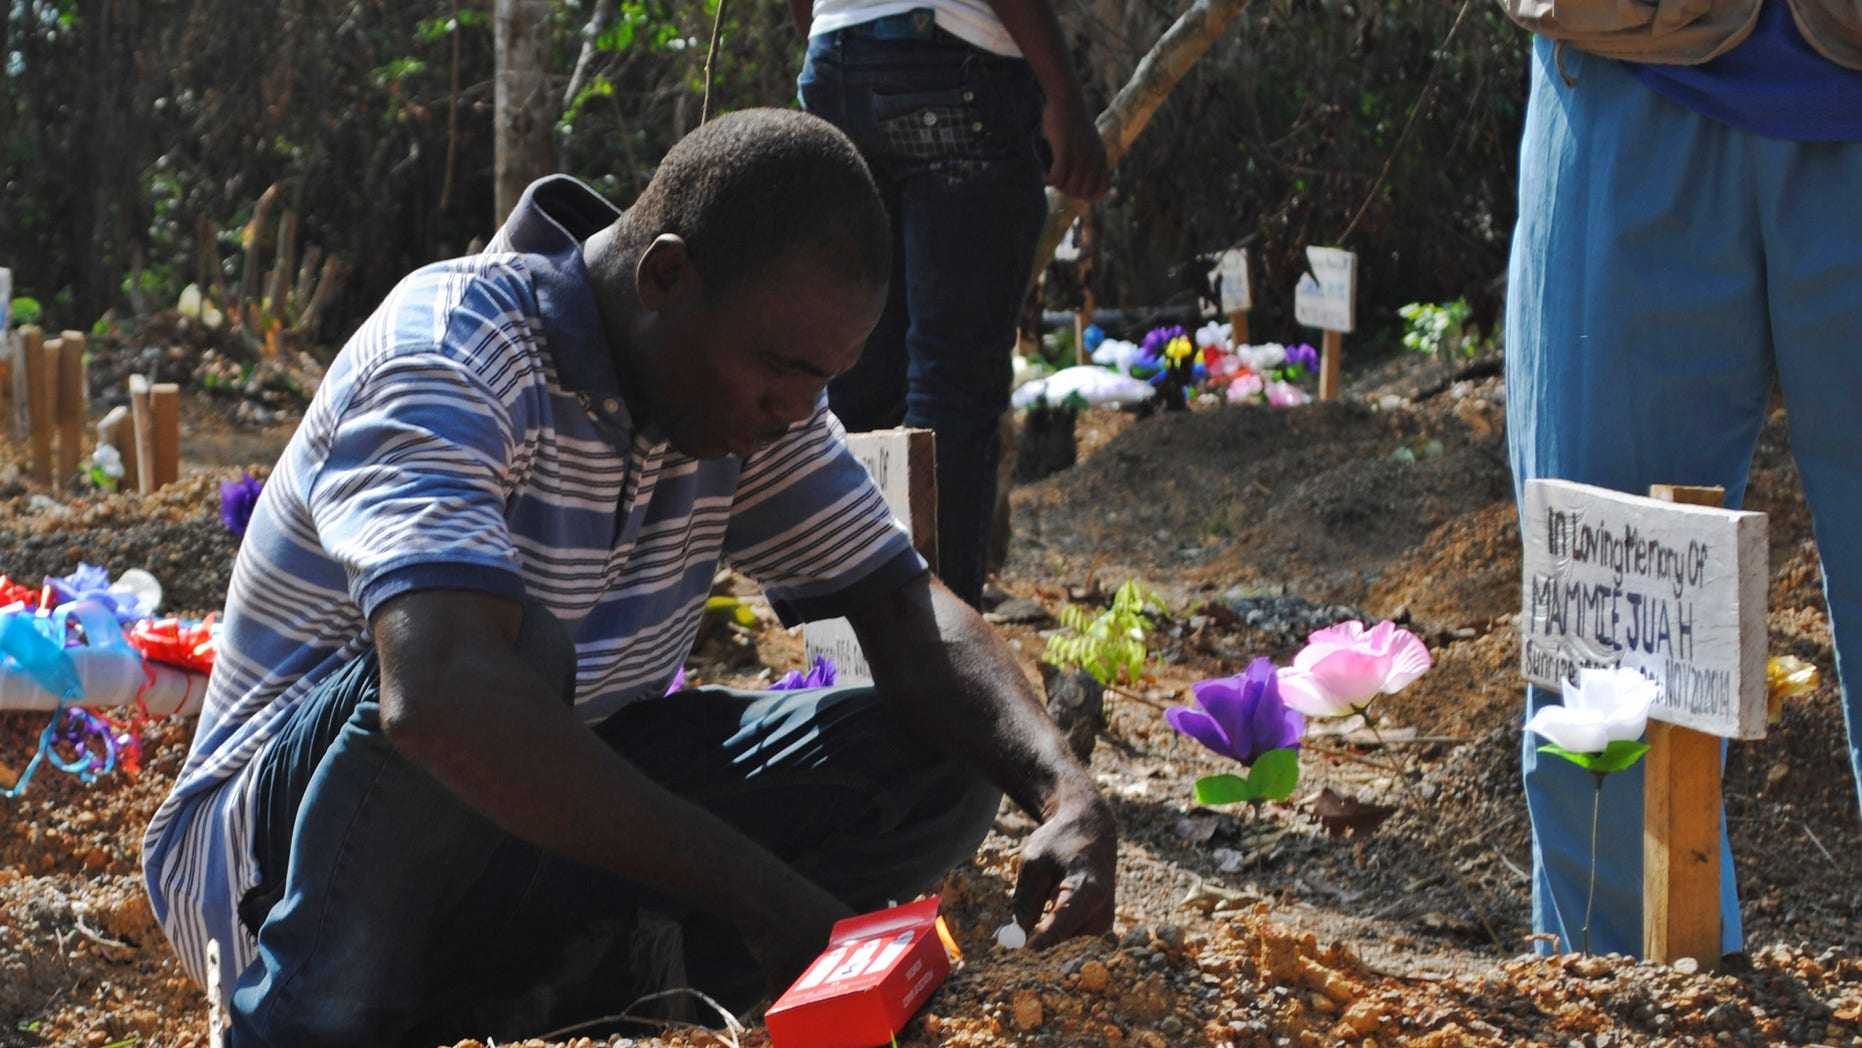 Survivor of Ebola virus Stanley Juah weeps at his son's grave at a cemetery for victims of Ebola virus in Suakoko, Liberia, March 11, 2015. Juah lost four of his family members and relatives to Ebola. REUTERS/James Giahyue